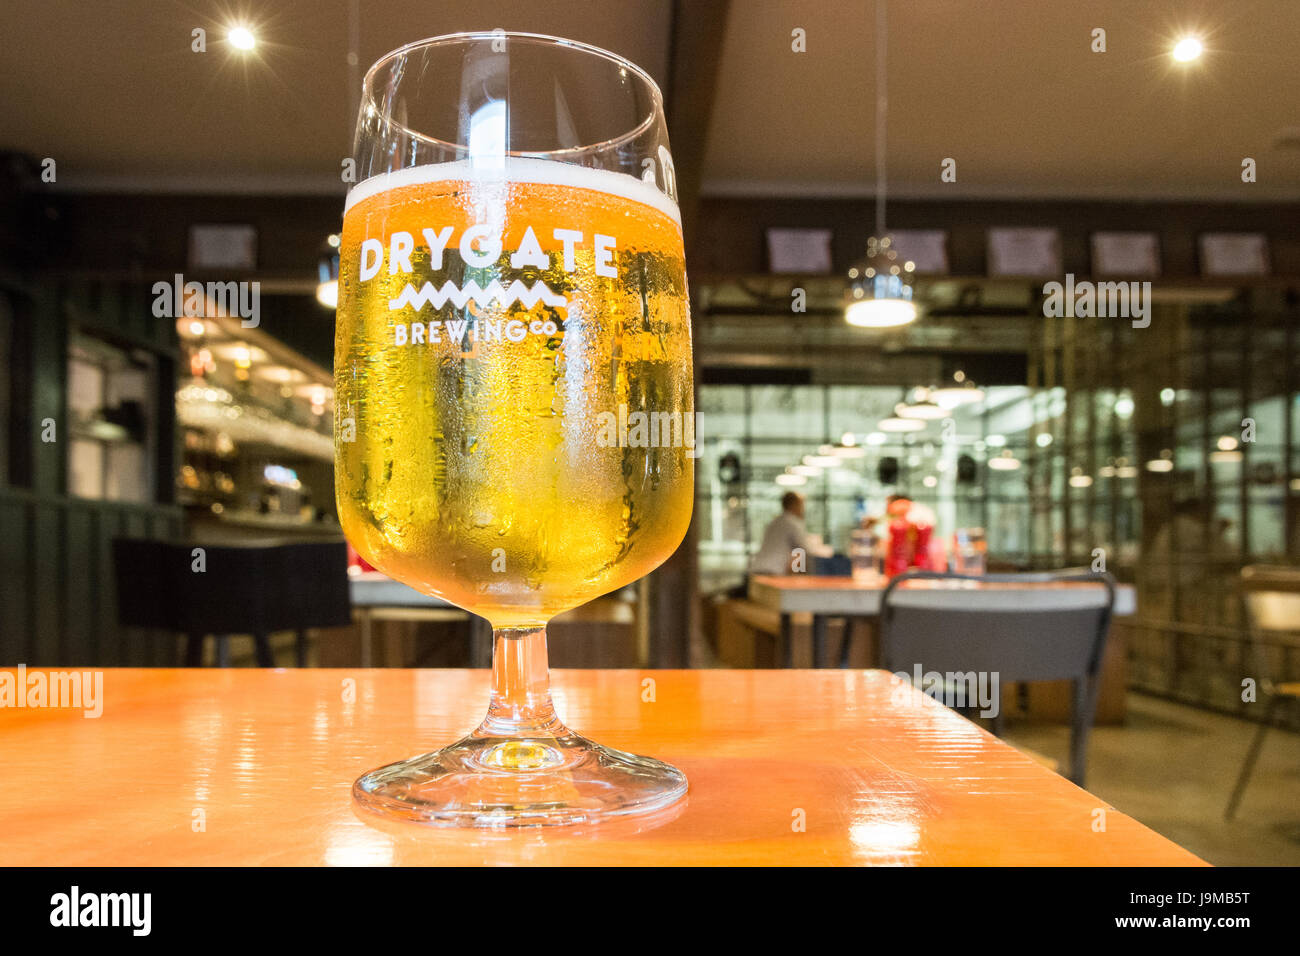 Drygate brewery - glass of Pilsner at the Brewery Tap and Restaurant, Glasgow, Scotland, UK - Stock Image